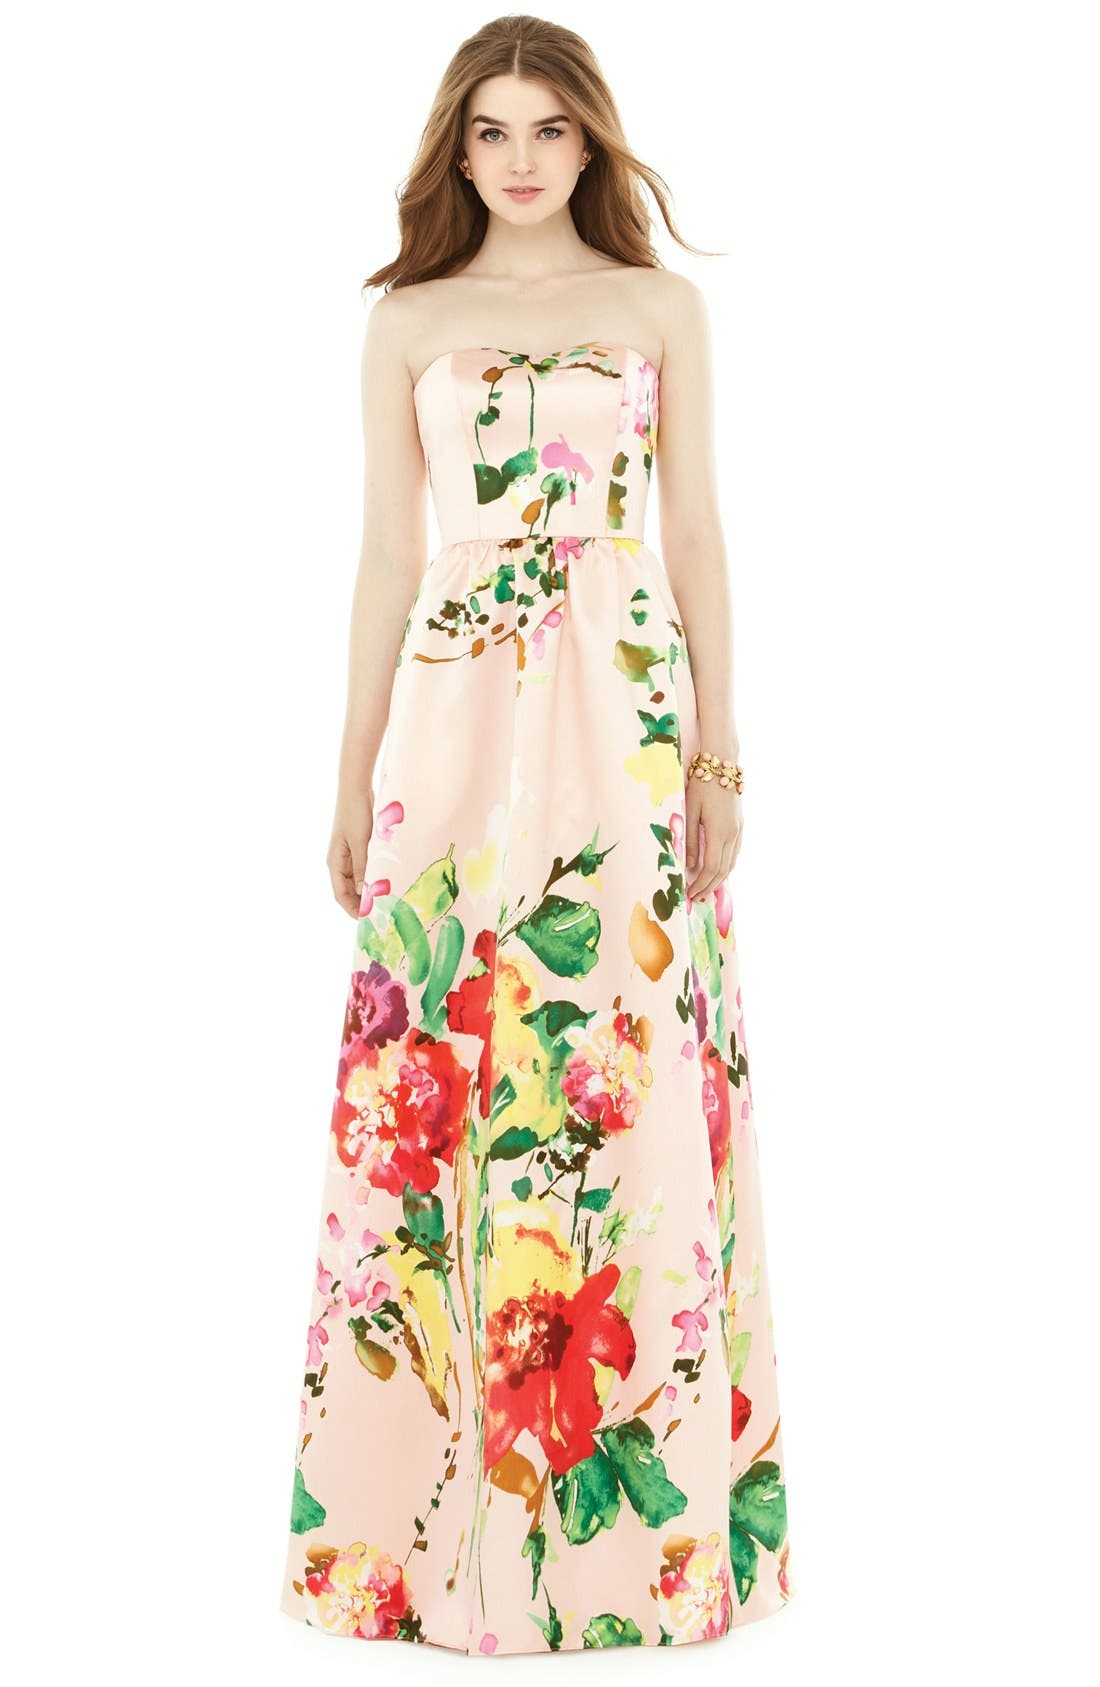 Alternate Image 1 Selected - Alfred Sung Watercolor Floral Strapless Sateen A-Line Gown